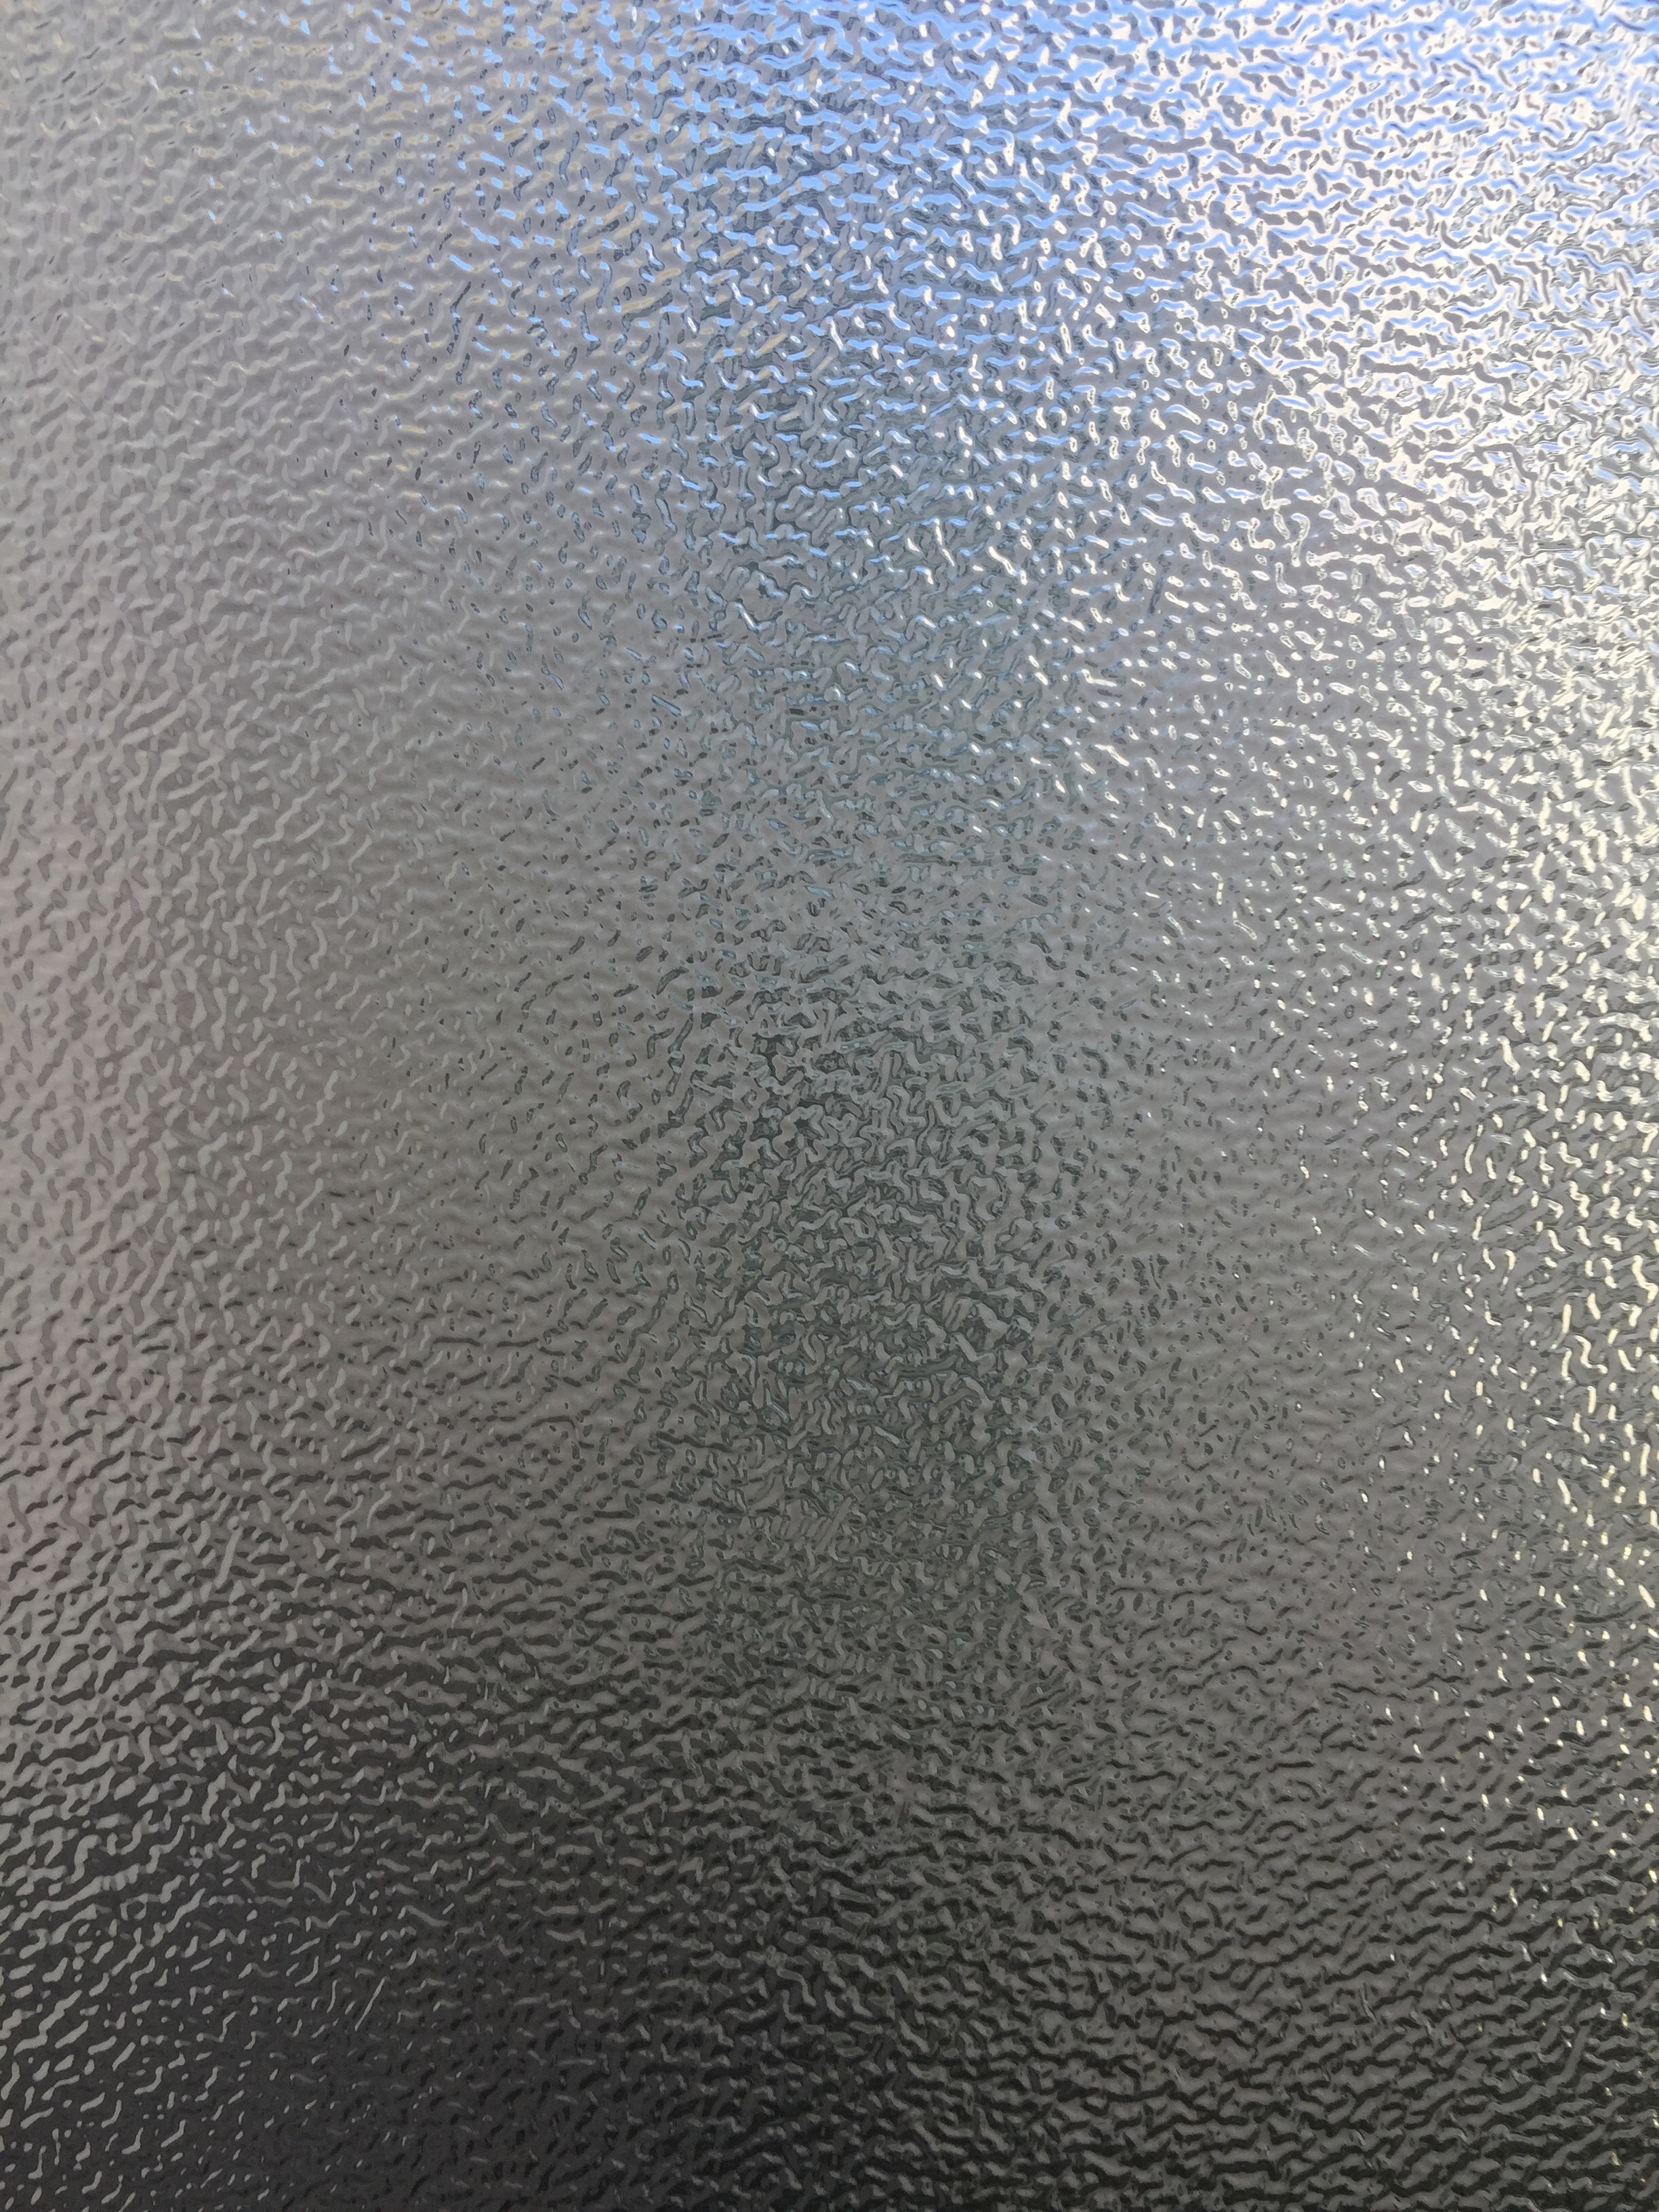 Reflective metal chrome surface | Free Textures